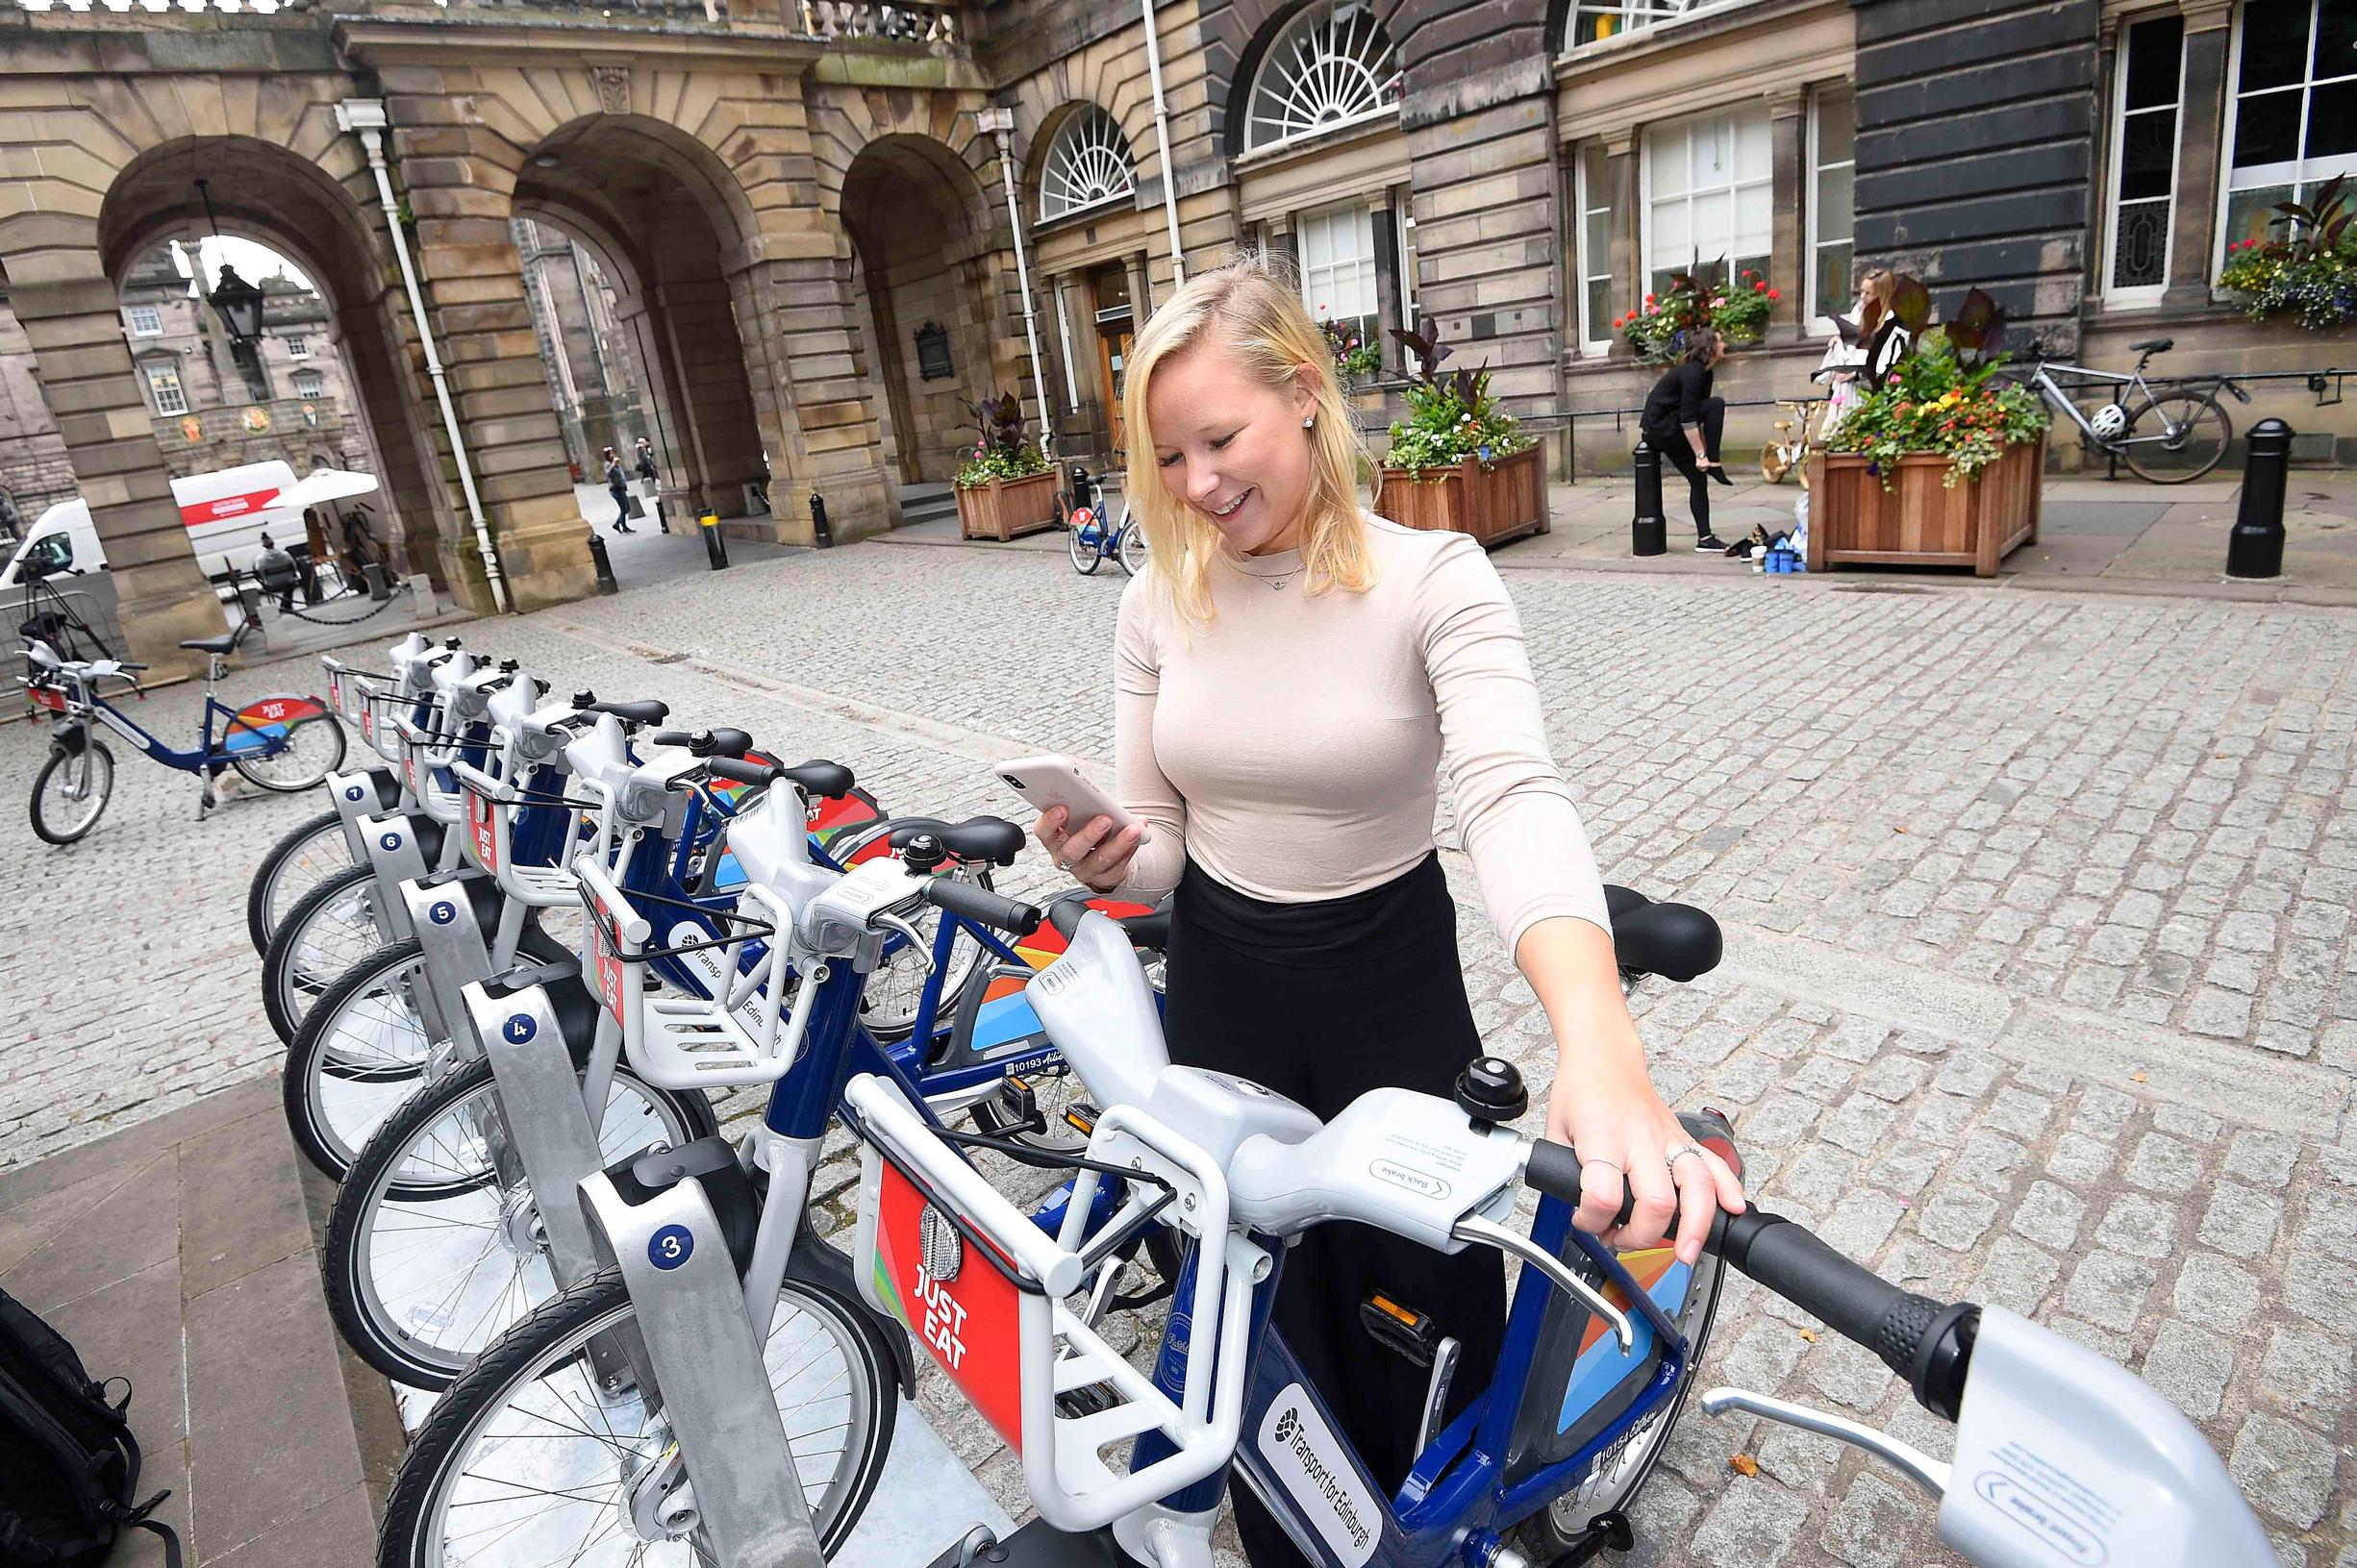 Edinburgh is to offer a four-month discounted pass from 13 July to encourage long-term uptake of cycling.